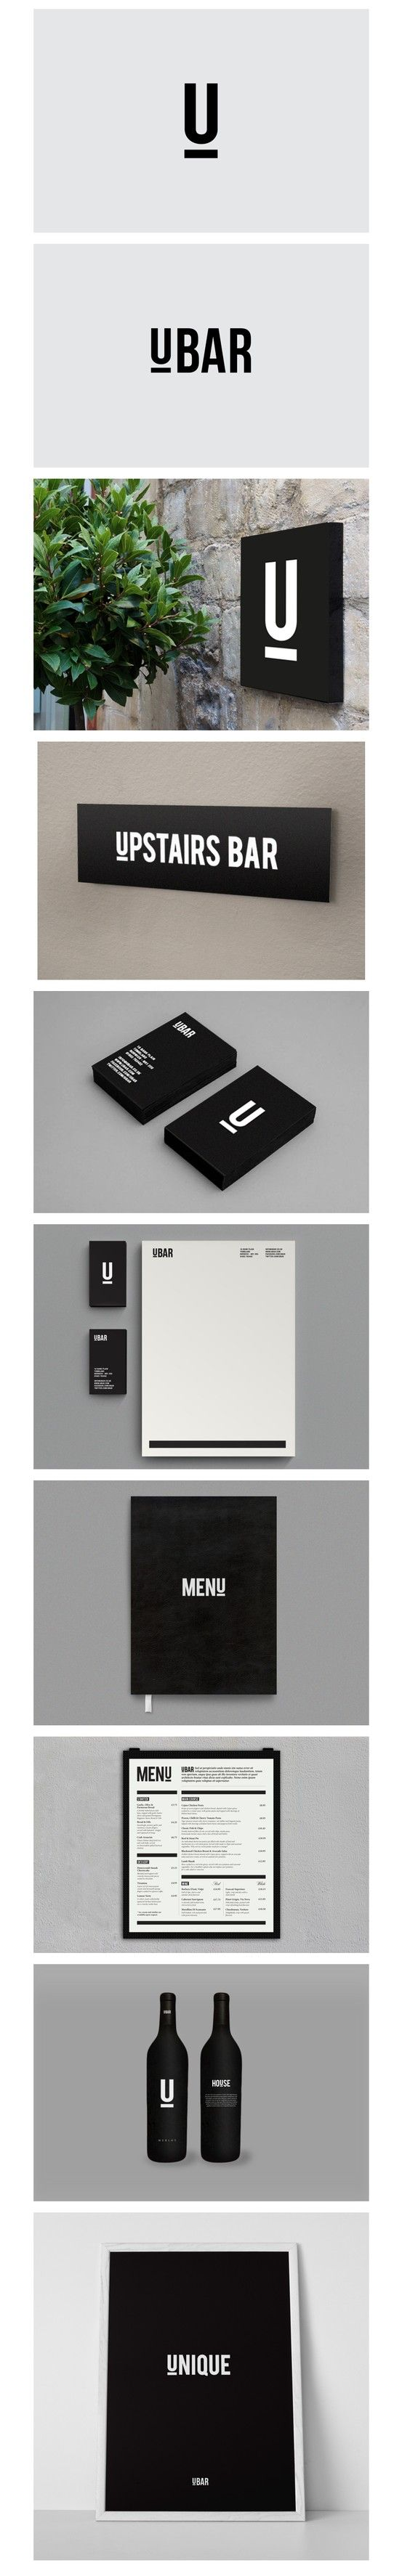 UBAR, branding, typography, monochrome, icon, U, brand, black and white…